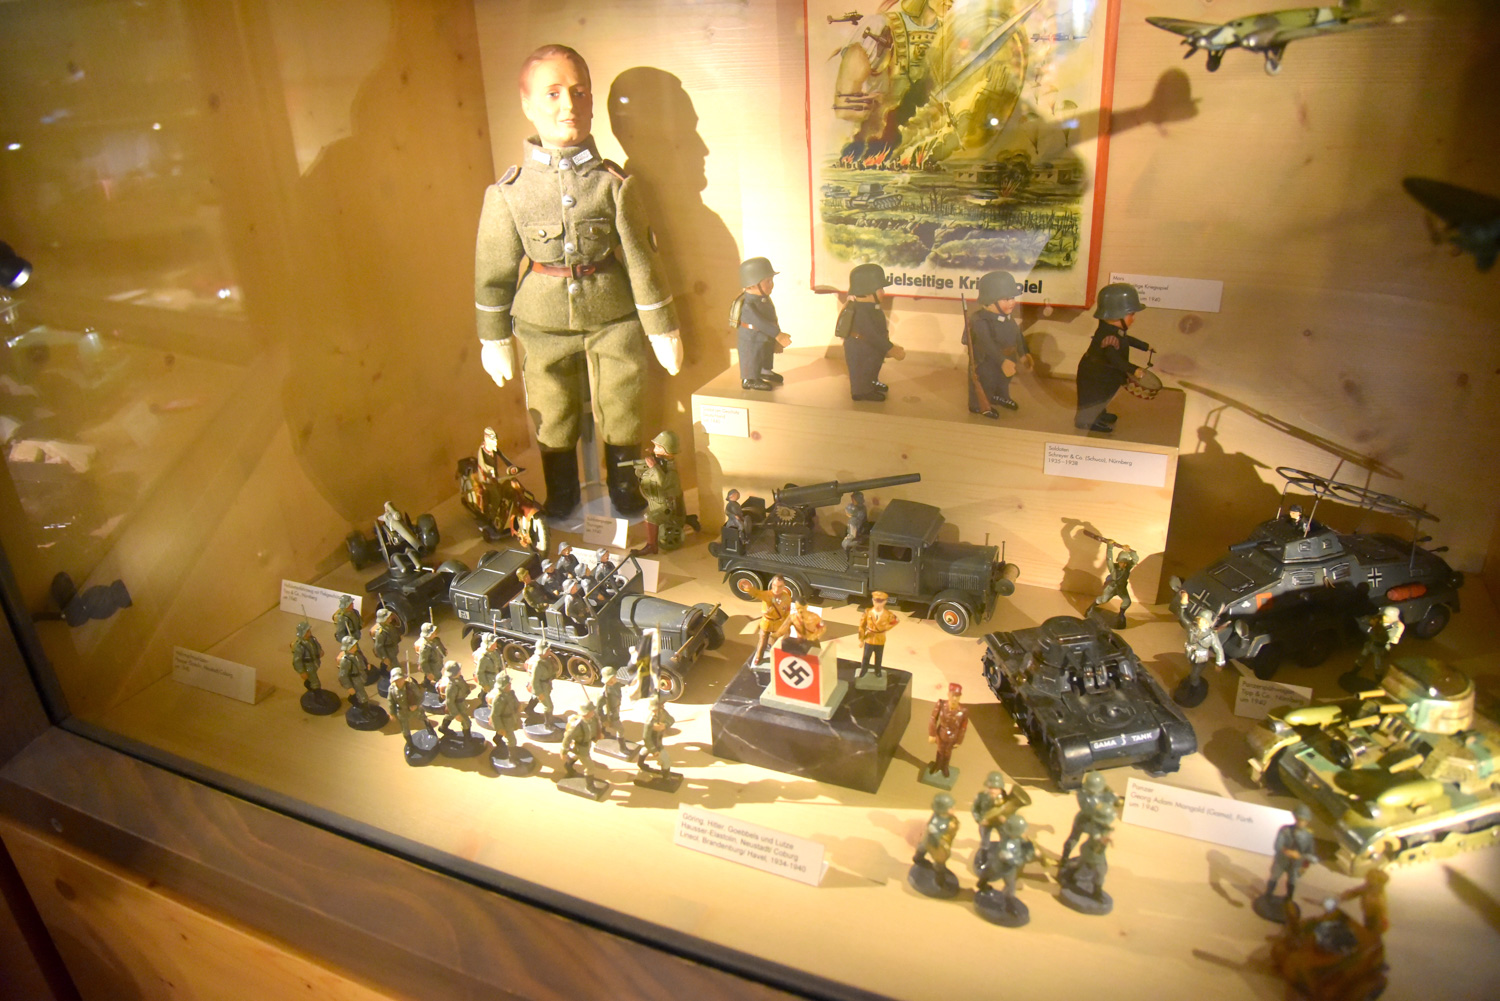 Among the vast collection is a small display of Third Reich-era toys that includes a figurine set of the Nazi leadership.